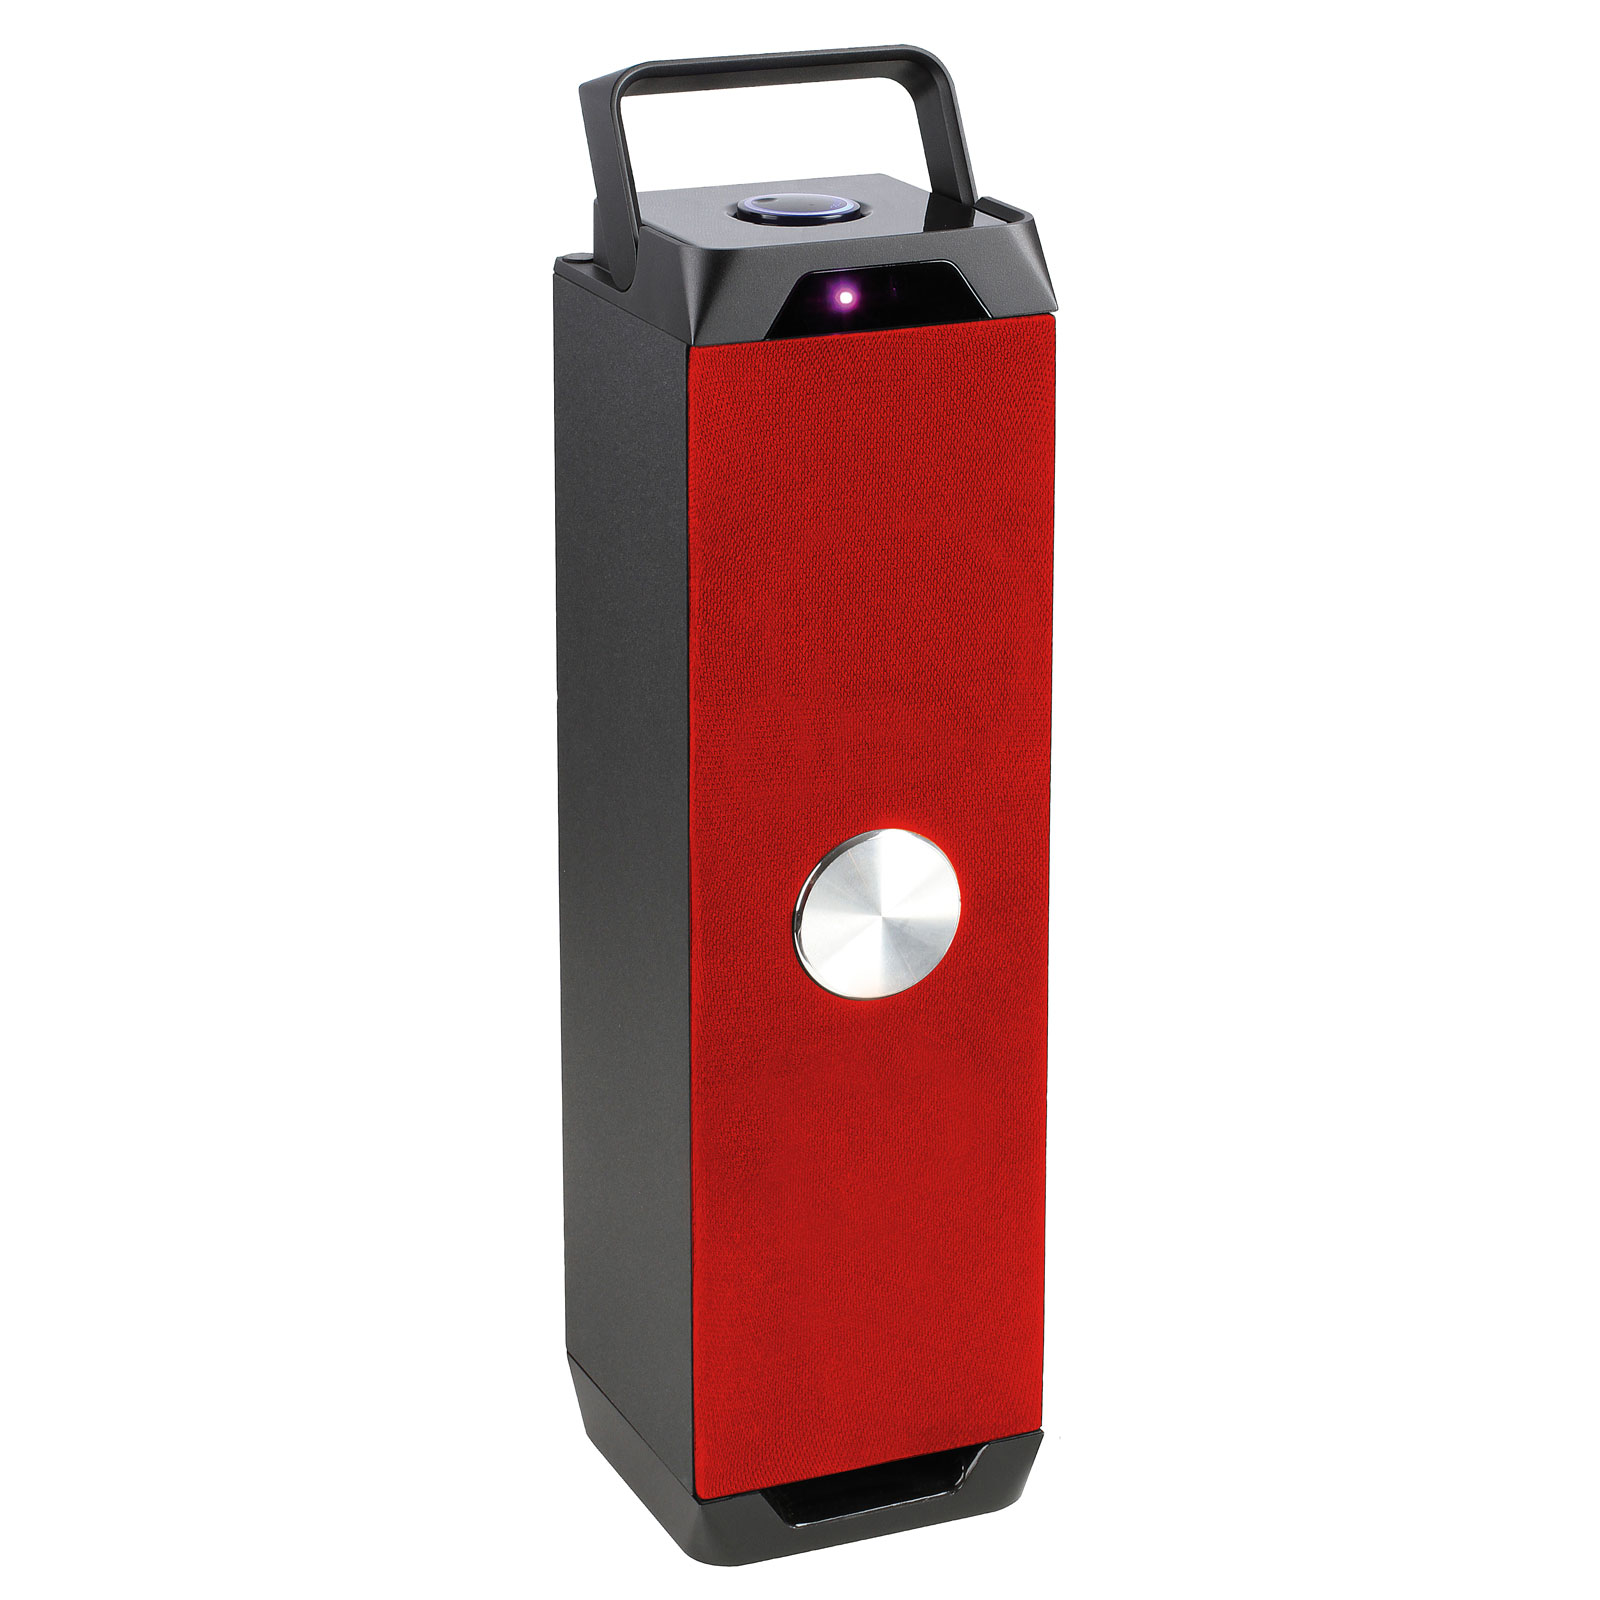 clipsonic tes117r rouge dock enceinte bluetooth clipsonic sur. Black Bedroom Furniture Sets. Home Design Ideas